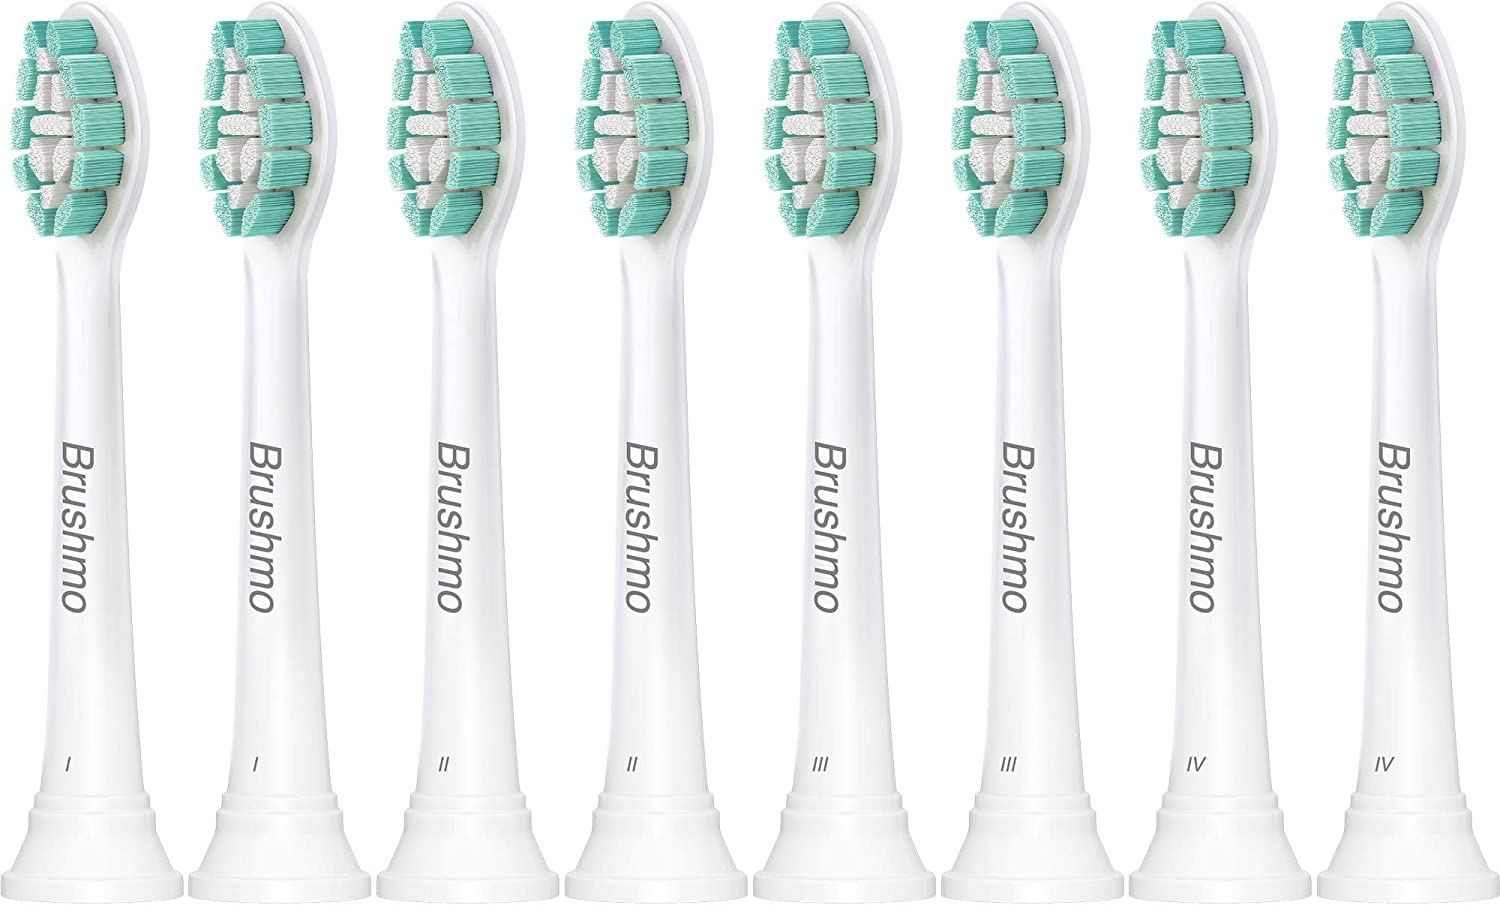 Brushmo 8 Pack Replacement Heads Deep Clean Toothbrush $14.4 Coupon